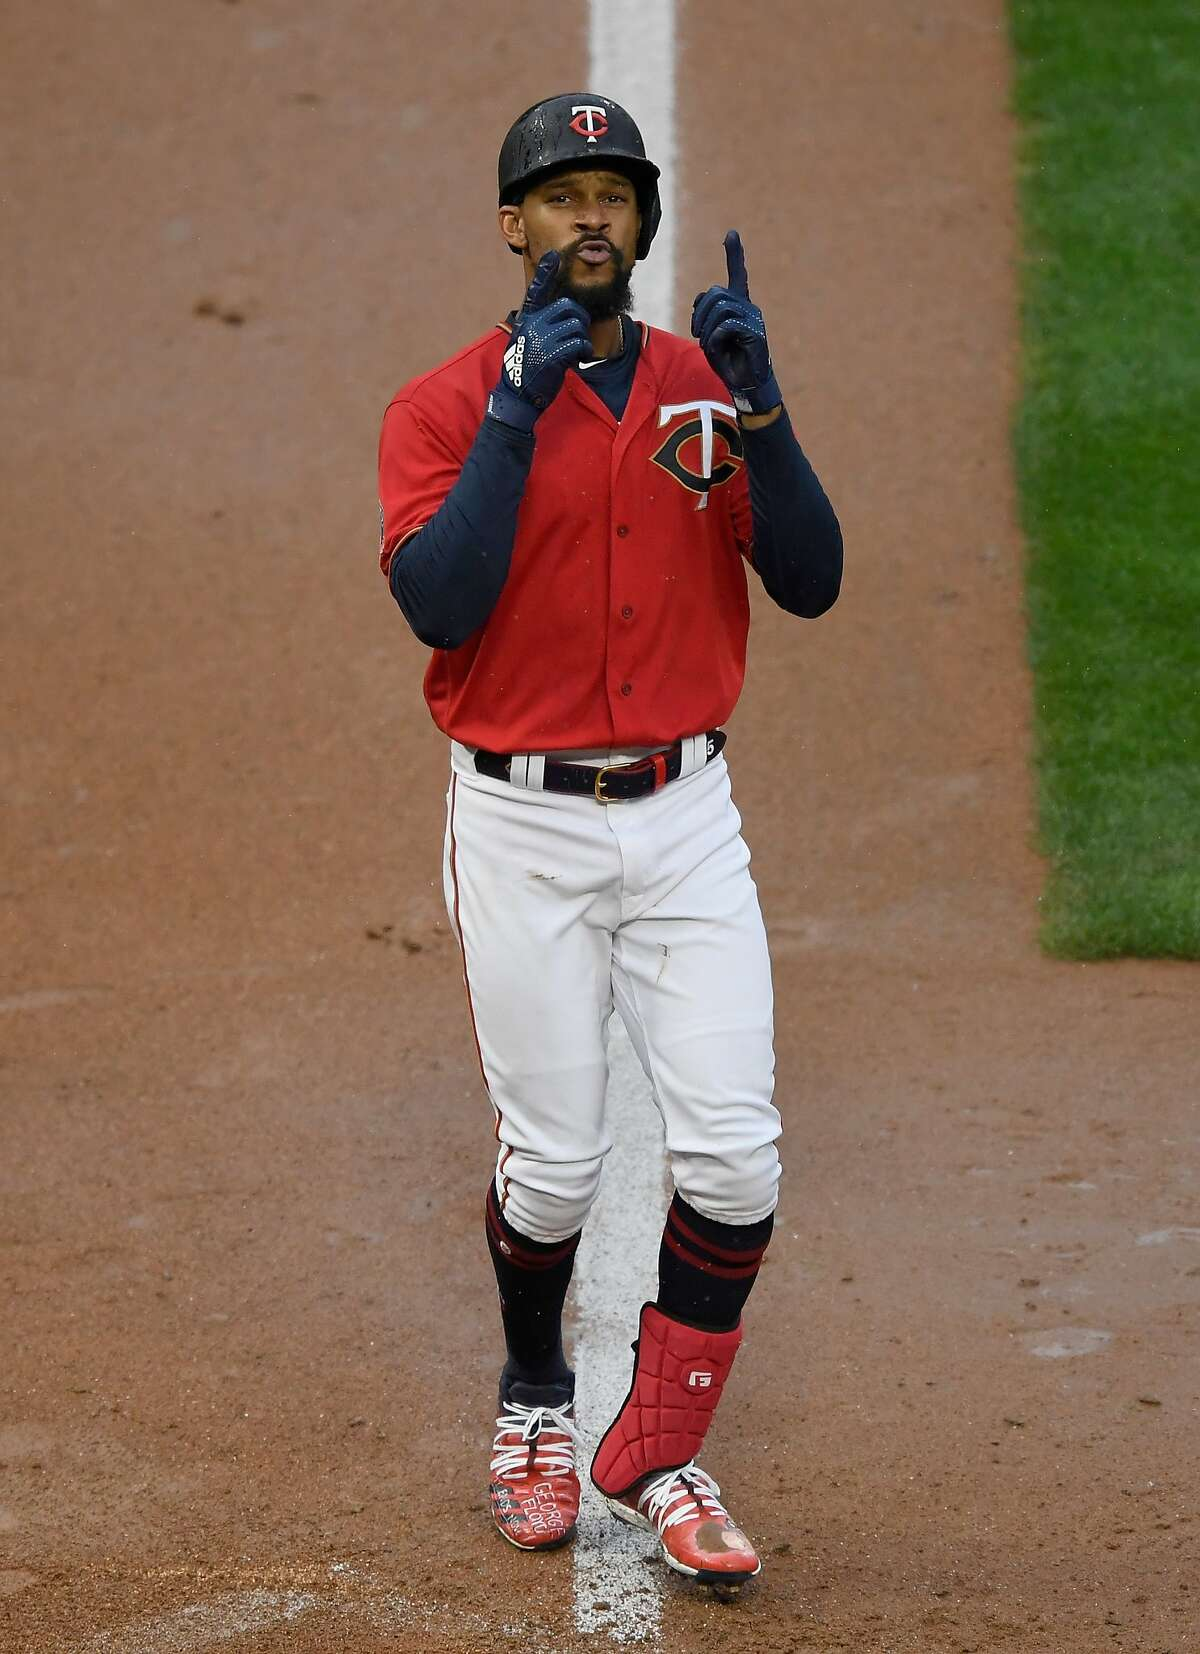 MINNEAPOLIS, MINNESOTA - SEPTEMBER 07: Byron Buxton #25 of the Minnesota Twins celebrates a solo home run against the Detroit Tigers during the eighth inning of the game at Target Field on September 7, 2020 in Minneapolis, Minnesota. The Twins defeated the Tigers 6-2. (Photo by Hannah Foslien/Getty Images)